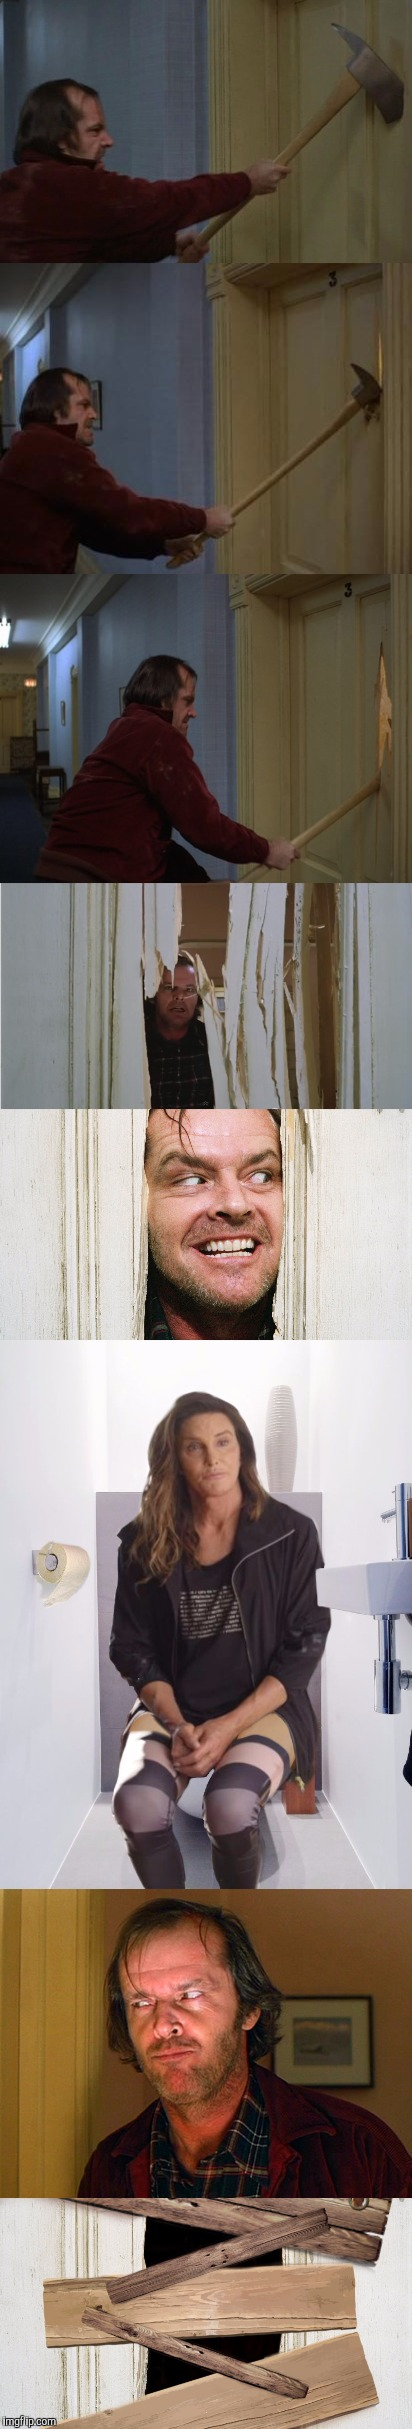 HERE'S......JOANIE? | . | image tagged in the shining,brucaitlyn jenner,funny | made w/ Imgflip meme maker